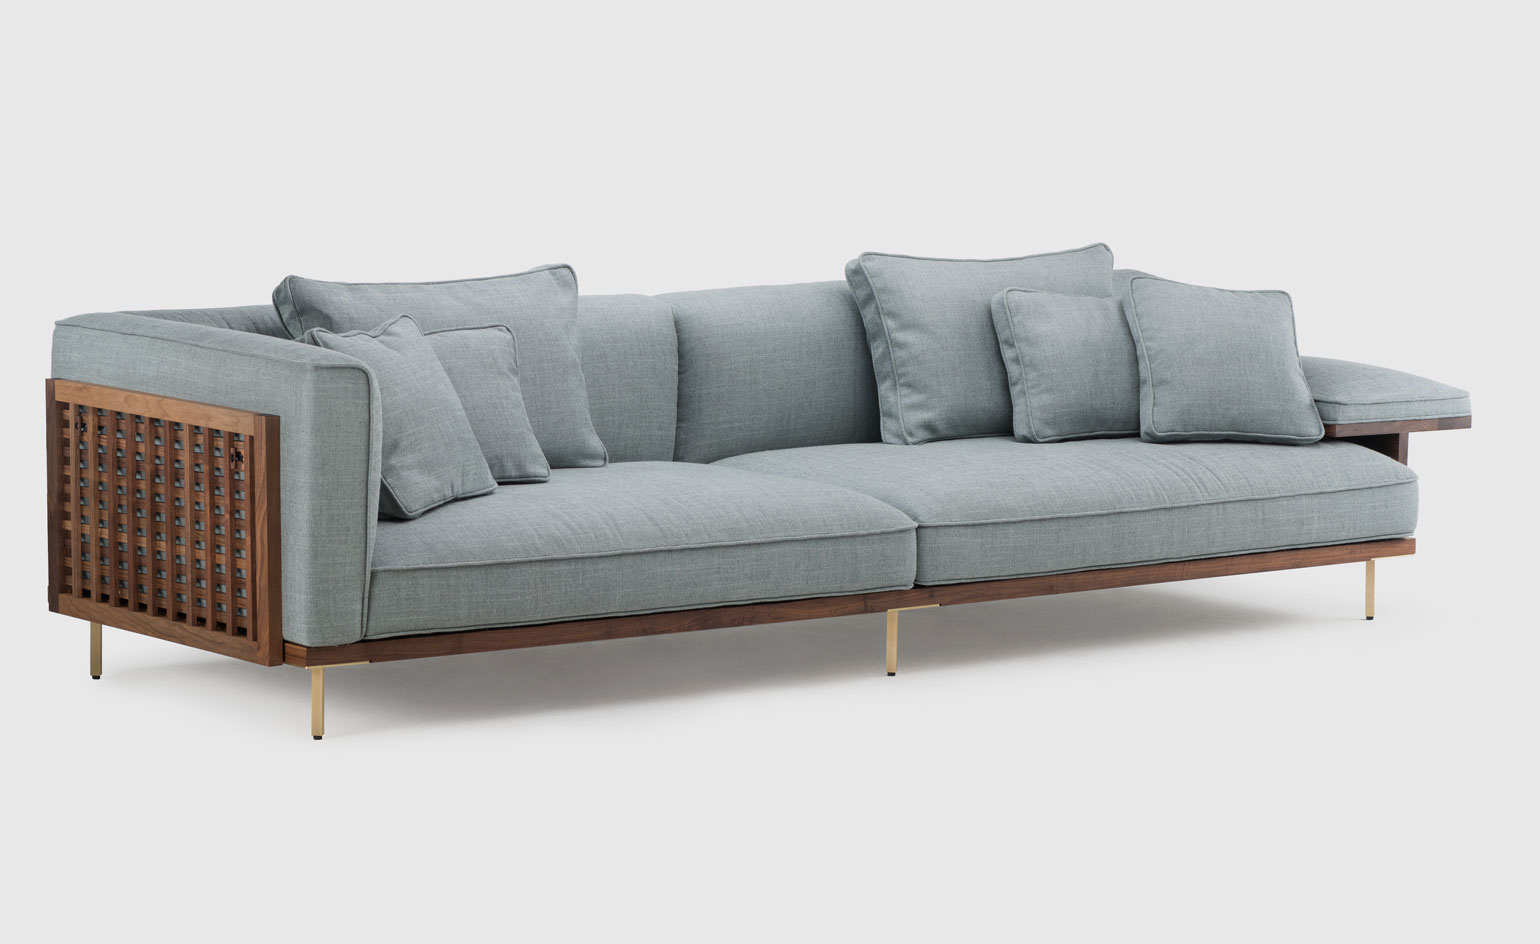 ... A Coveted List Of Talents: Luca Nichetto (sofa Pictured), Neri U0026 Hu,  Matthew Hilton And Jason Miller This Year. The Portuguese Furniture Brand  Aimed To ...